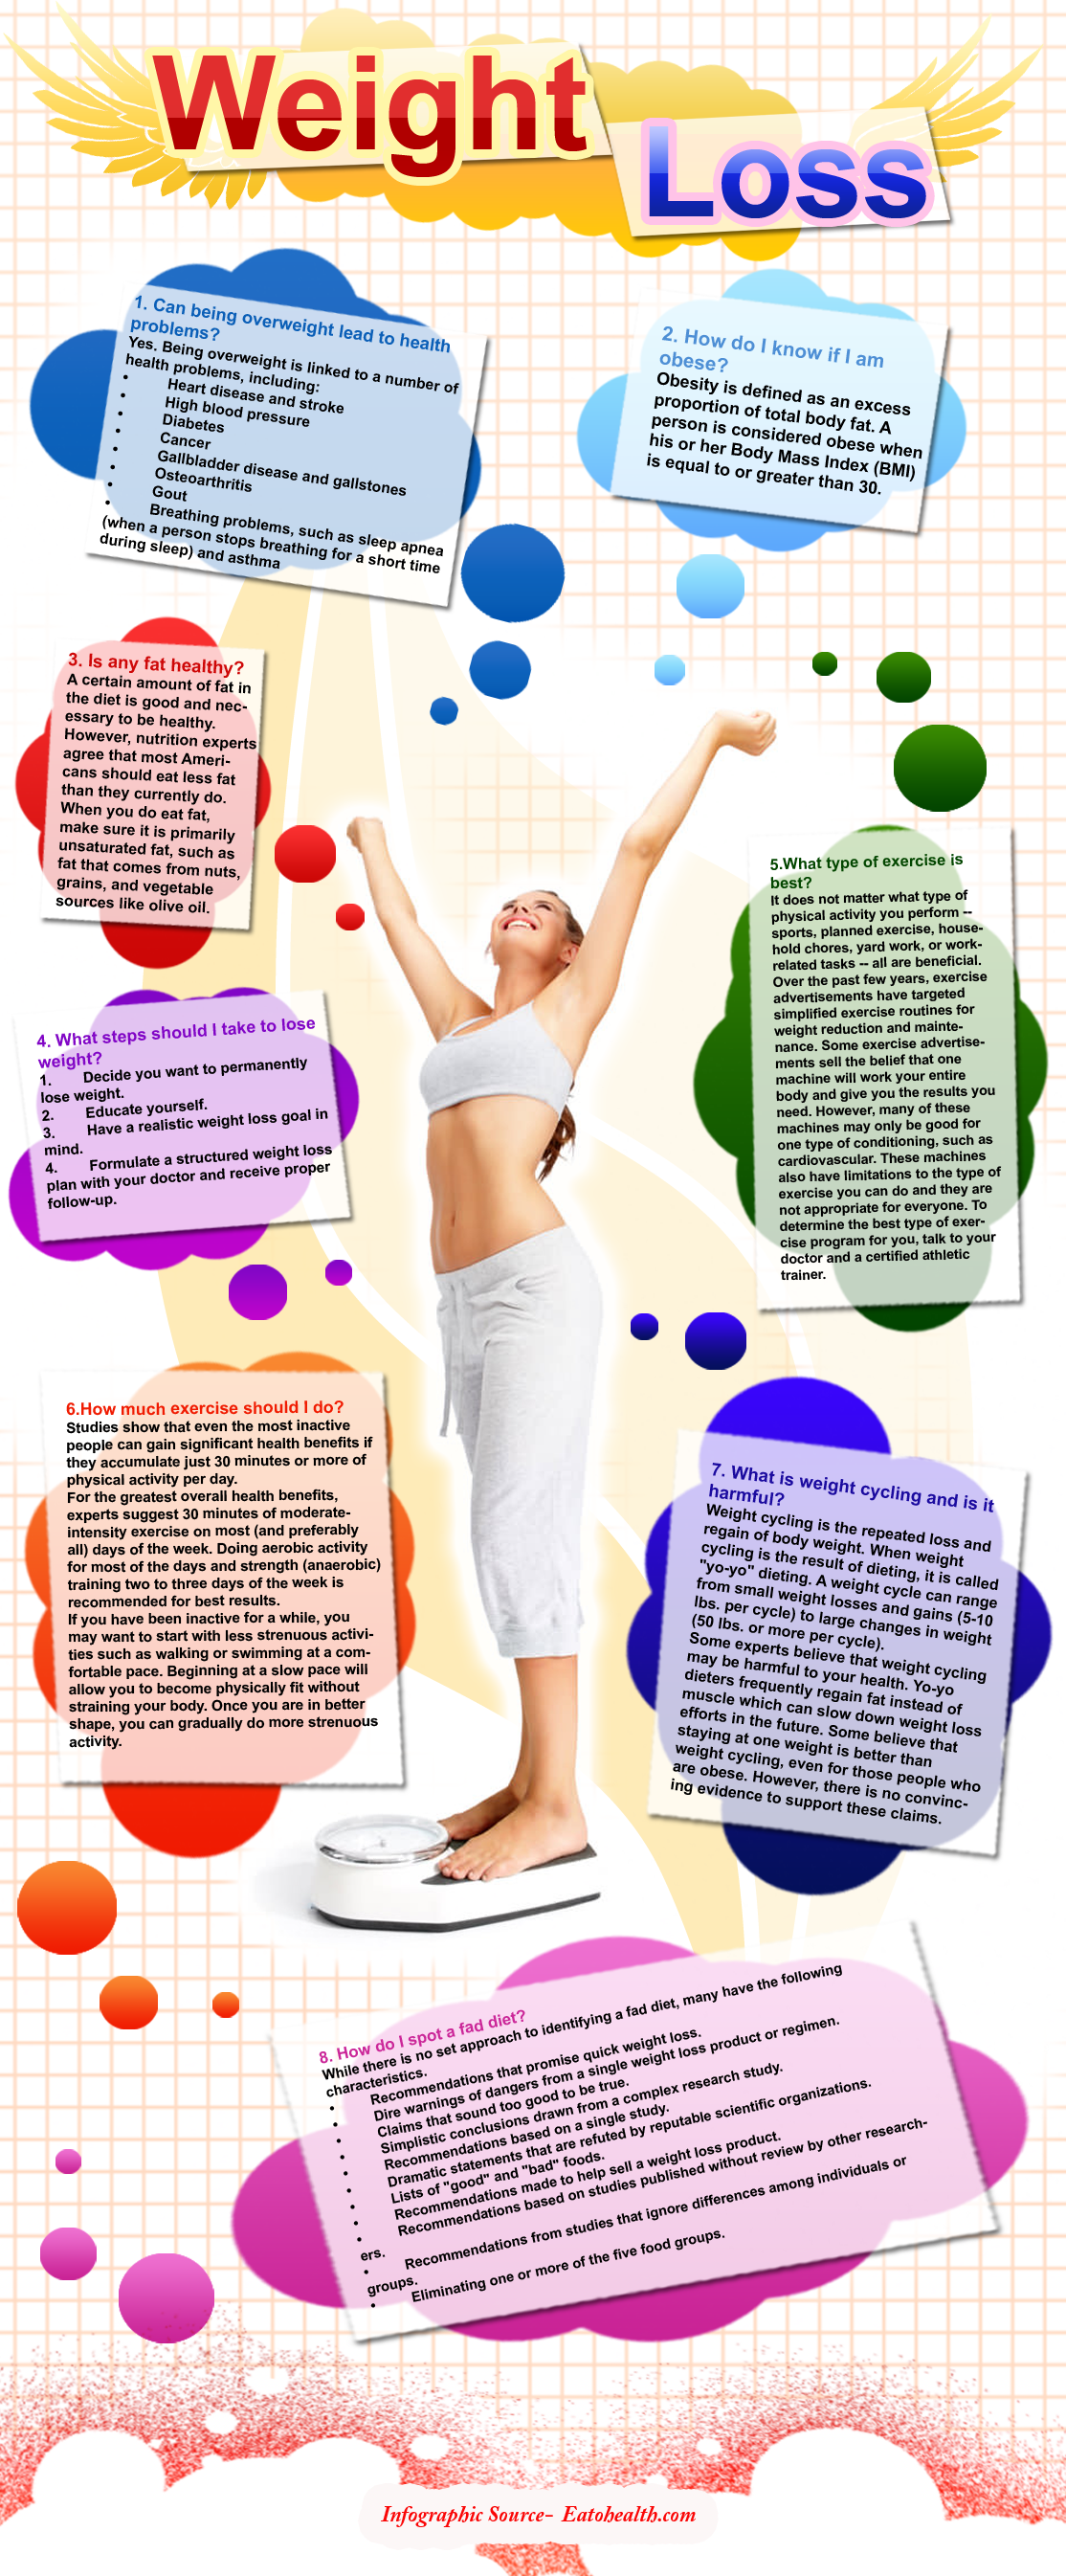 Top 8 Weight Loss Question And Answer Diet And Weight Loss By